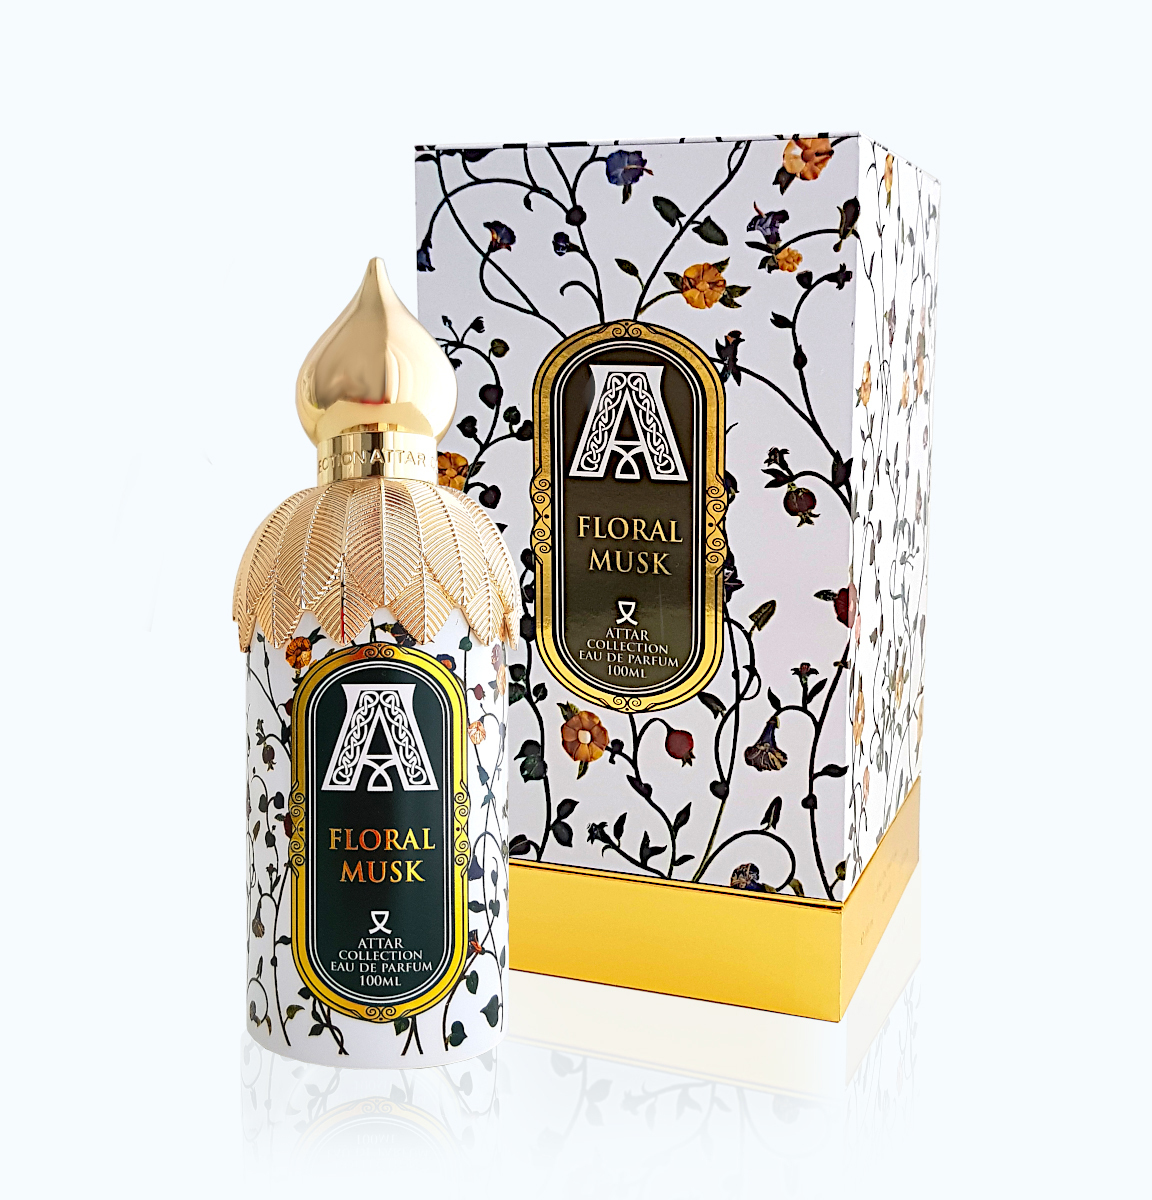 Attar Collection Floral Musk2.jpg